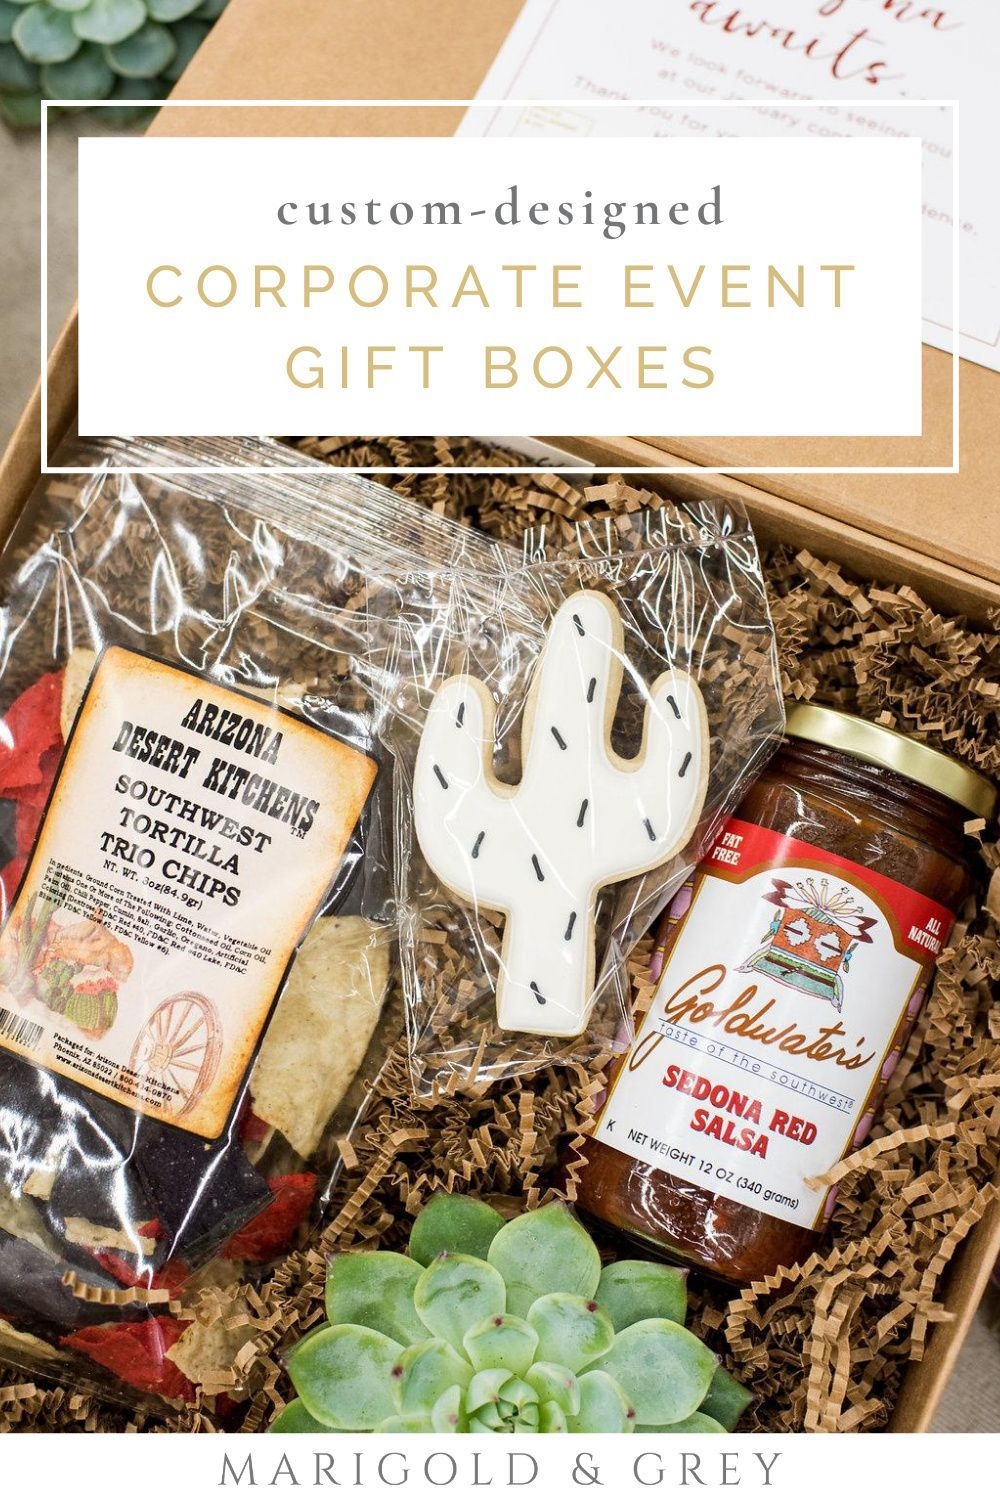 Arizona inspired corporate event gift boxes event gifts